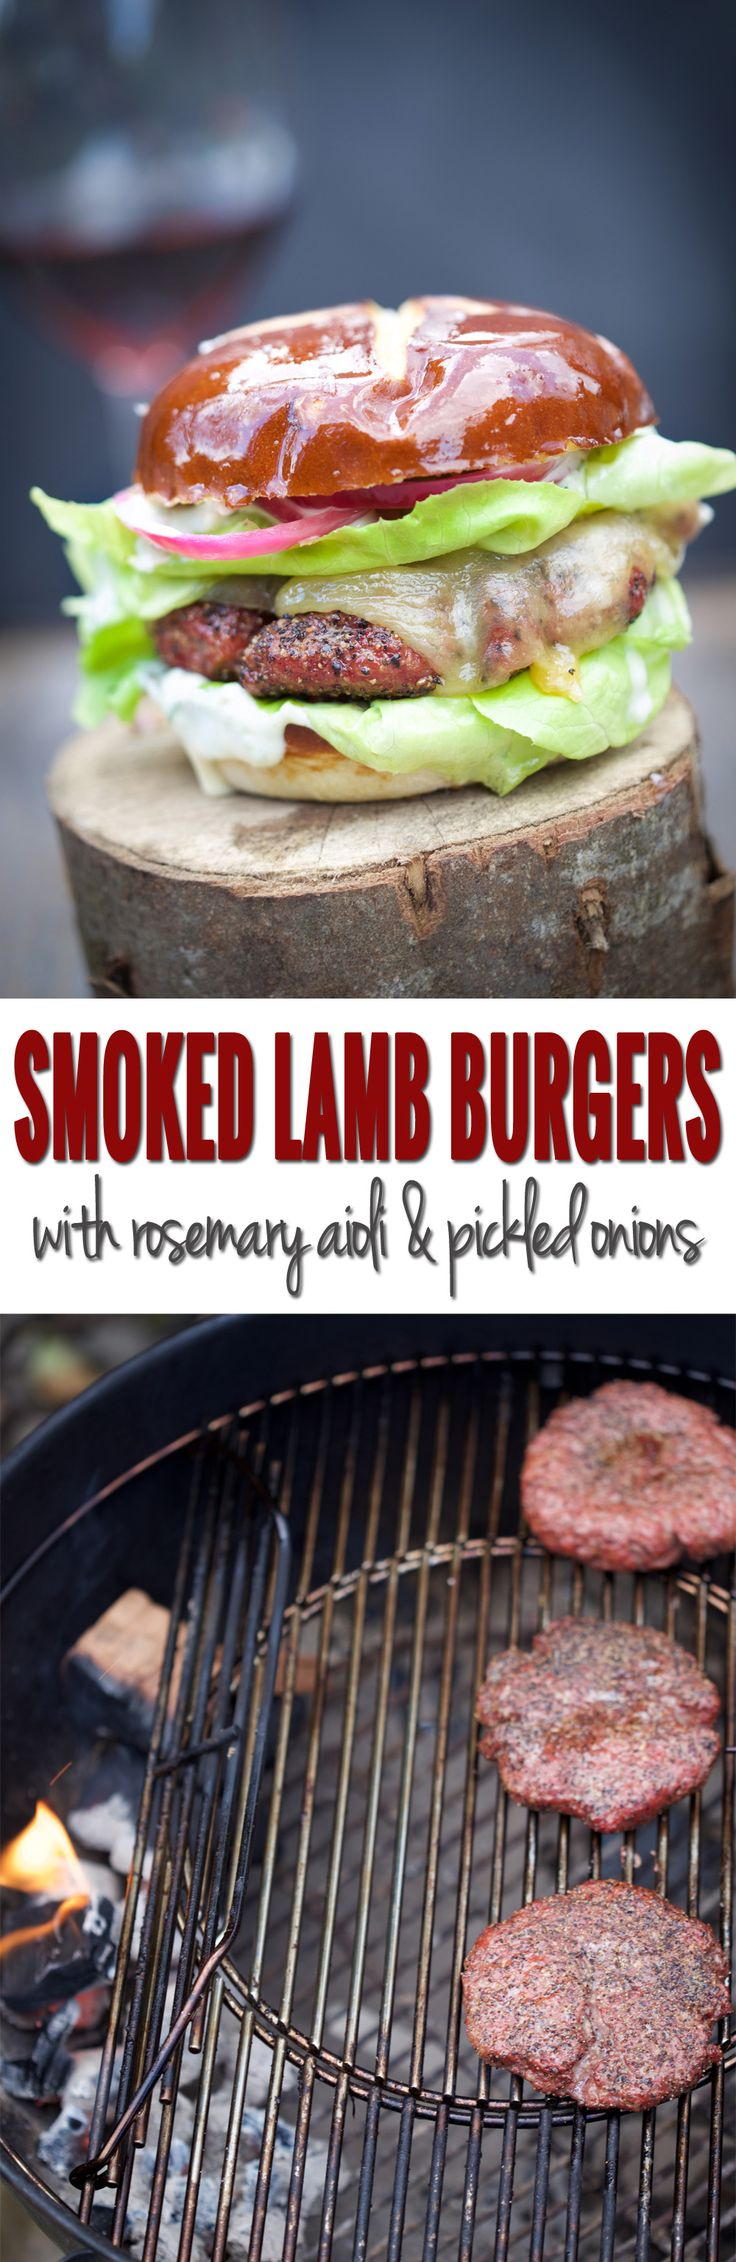 How to smoke lamb burgers on a Weber Kettle Grill and a recipe for smoked lamb burgers with rosemary aioli and pickled onions.